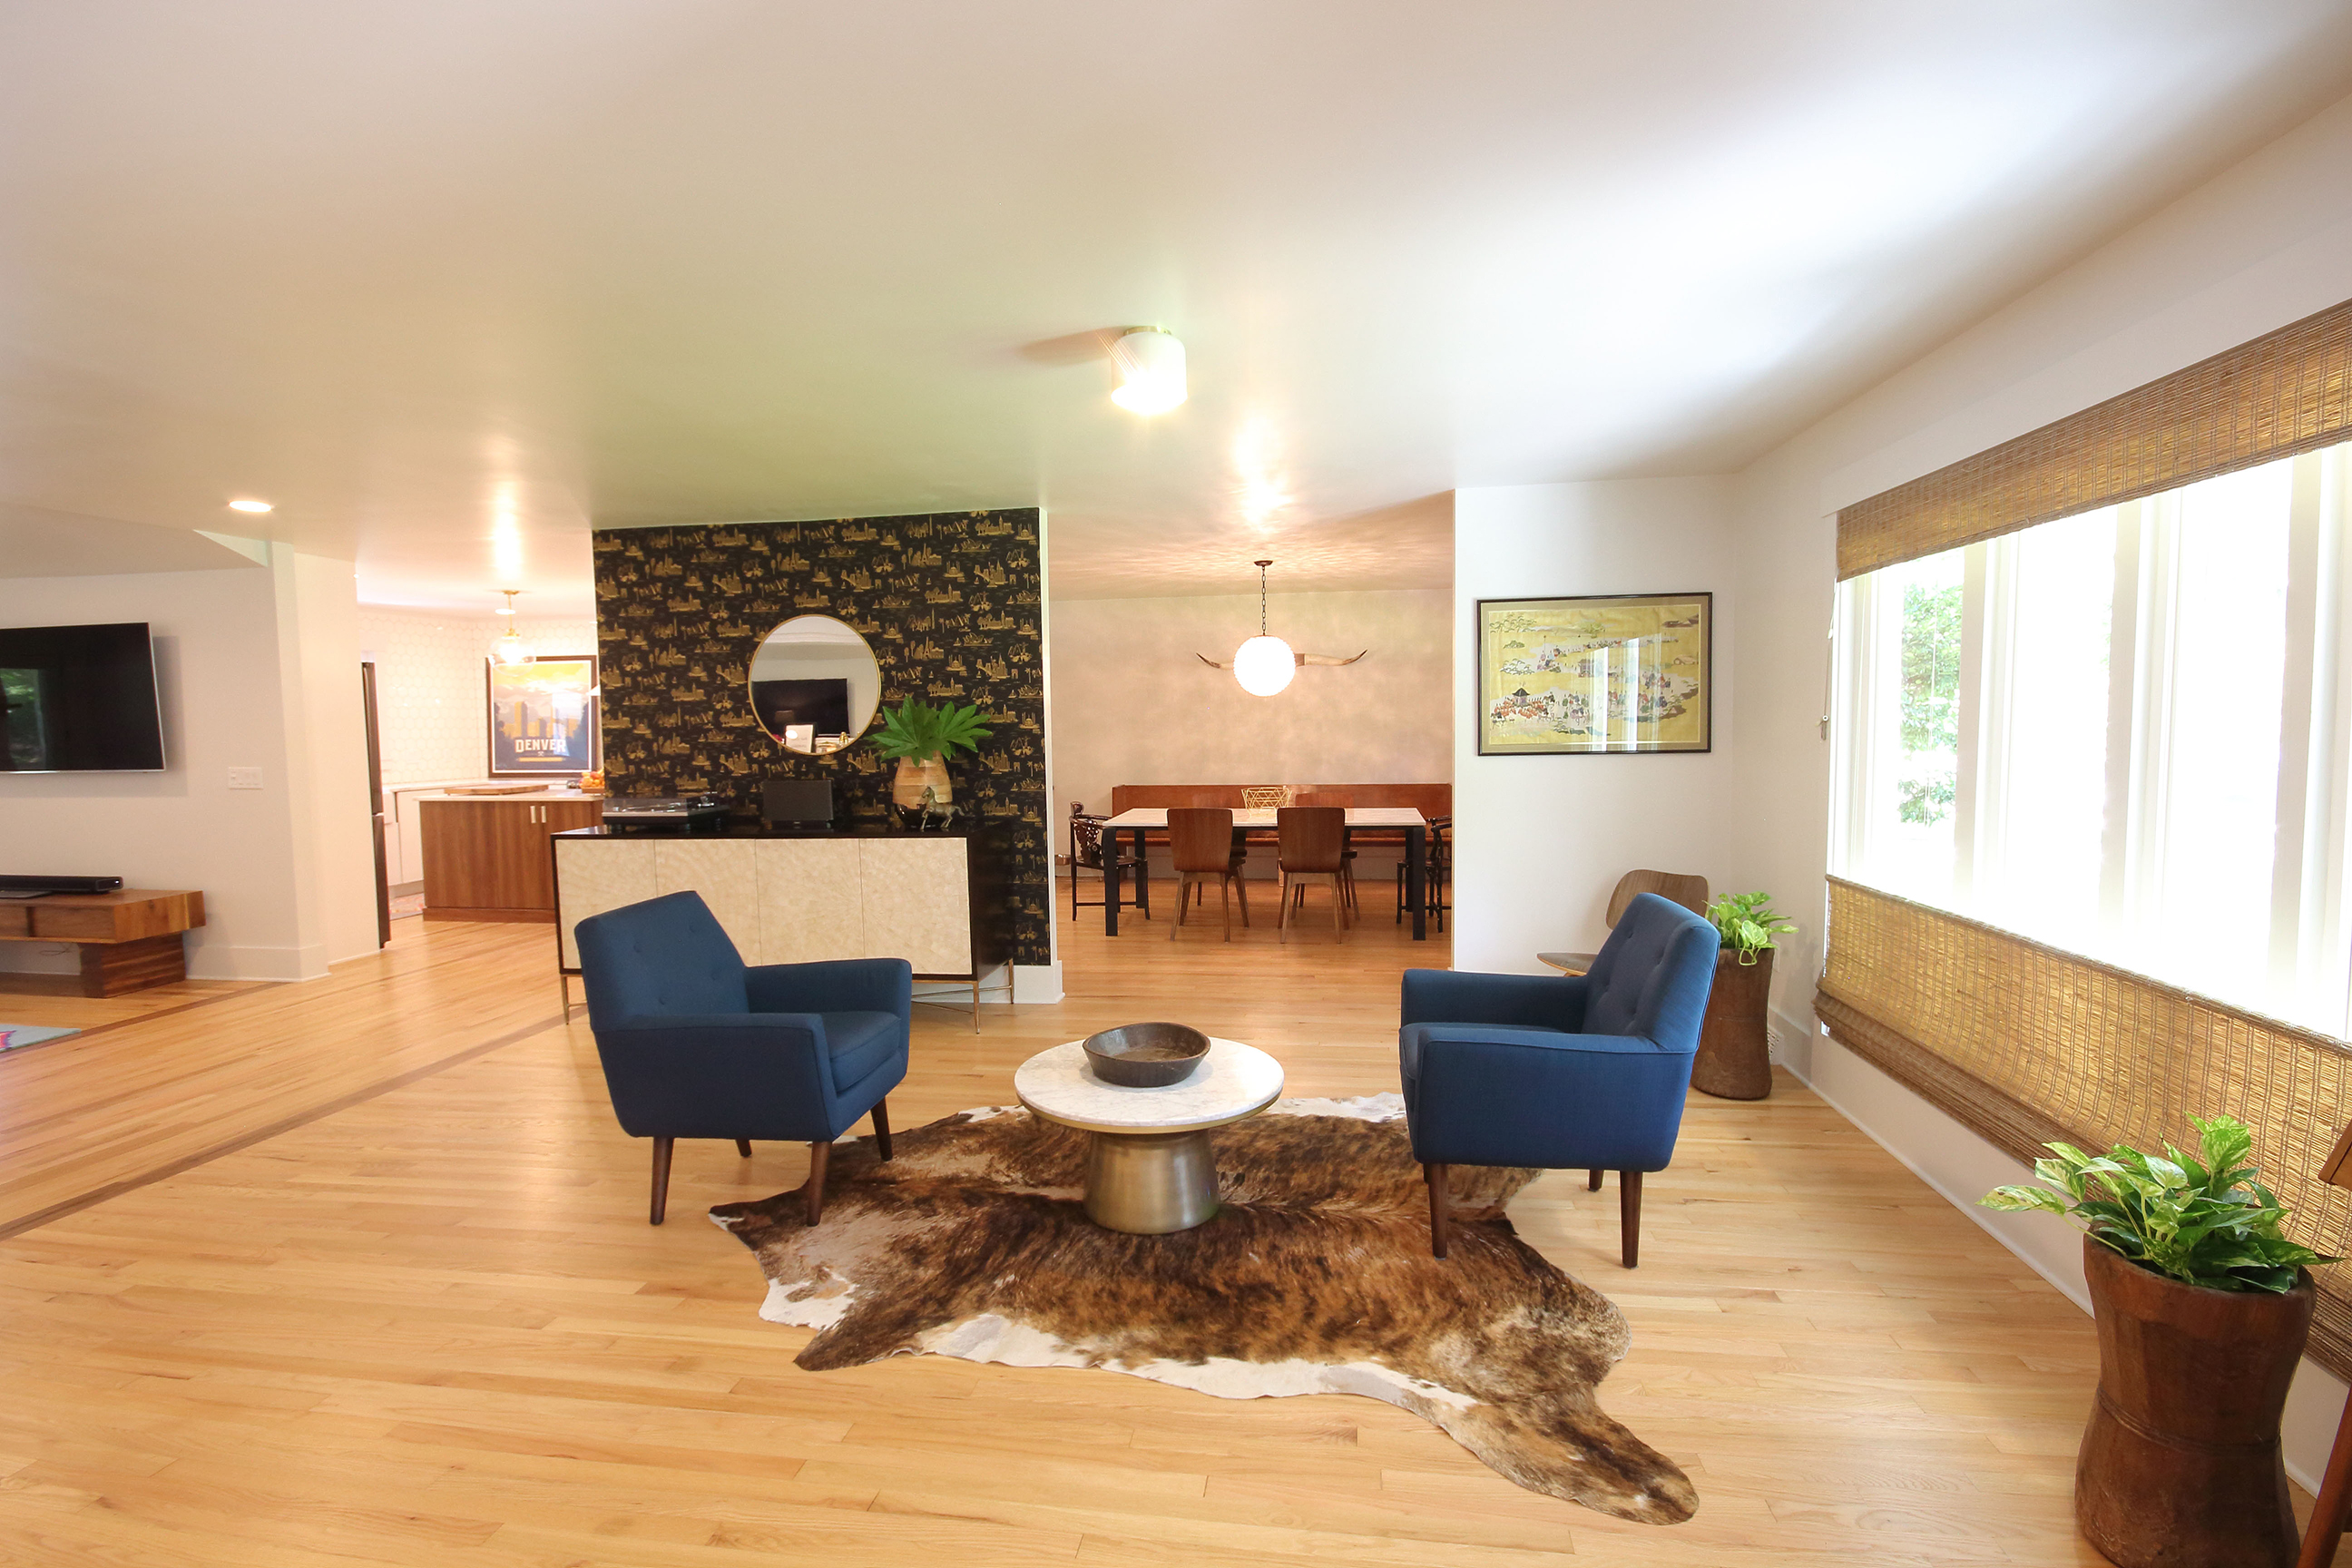 remodeled living space with fur rug